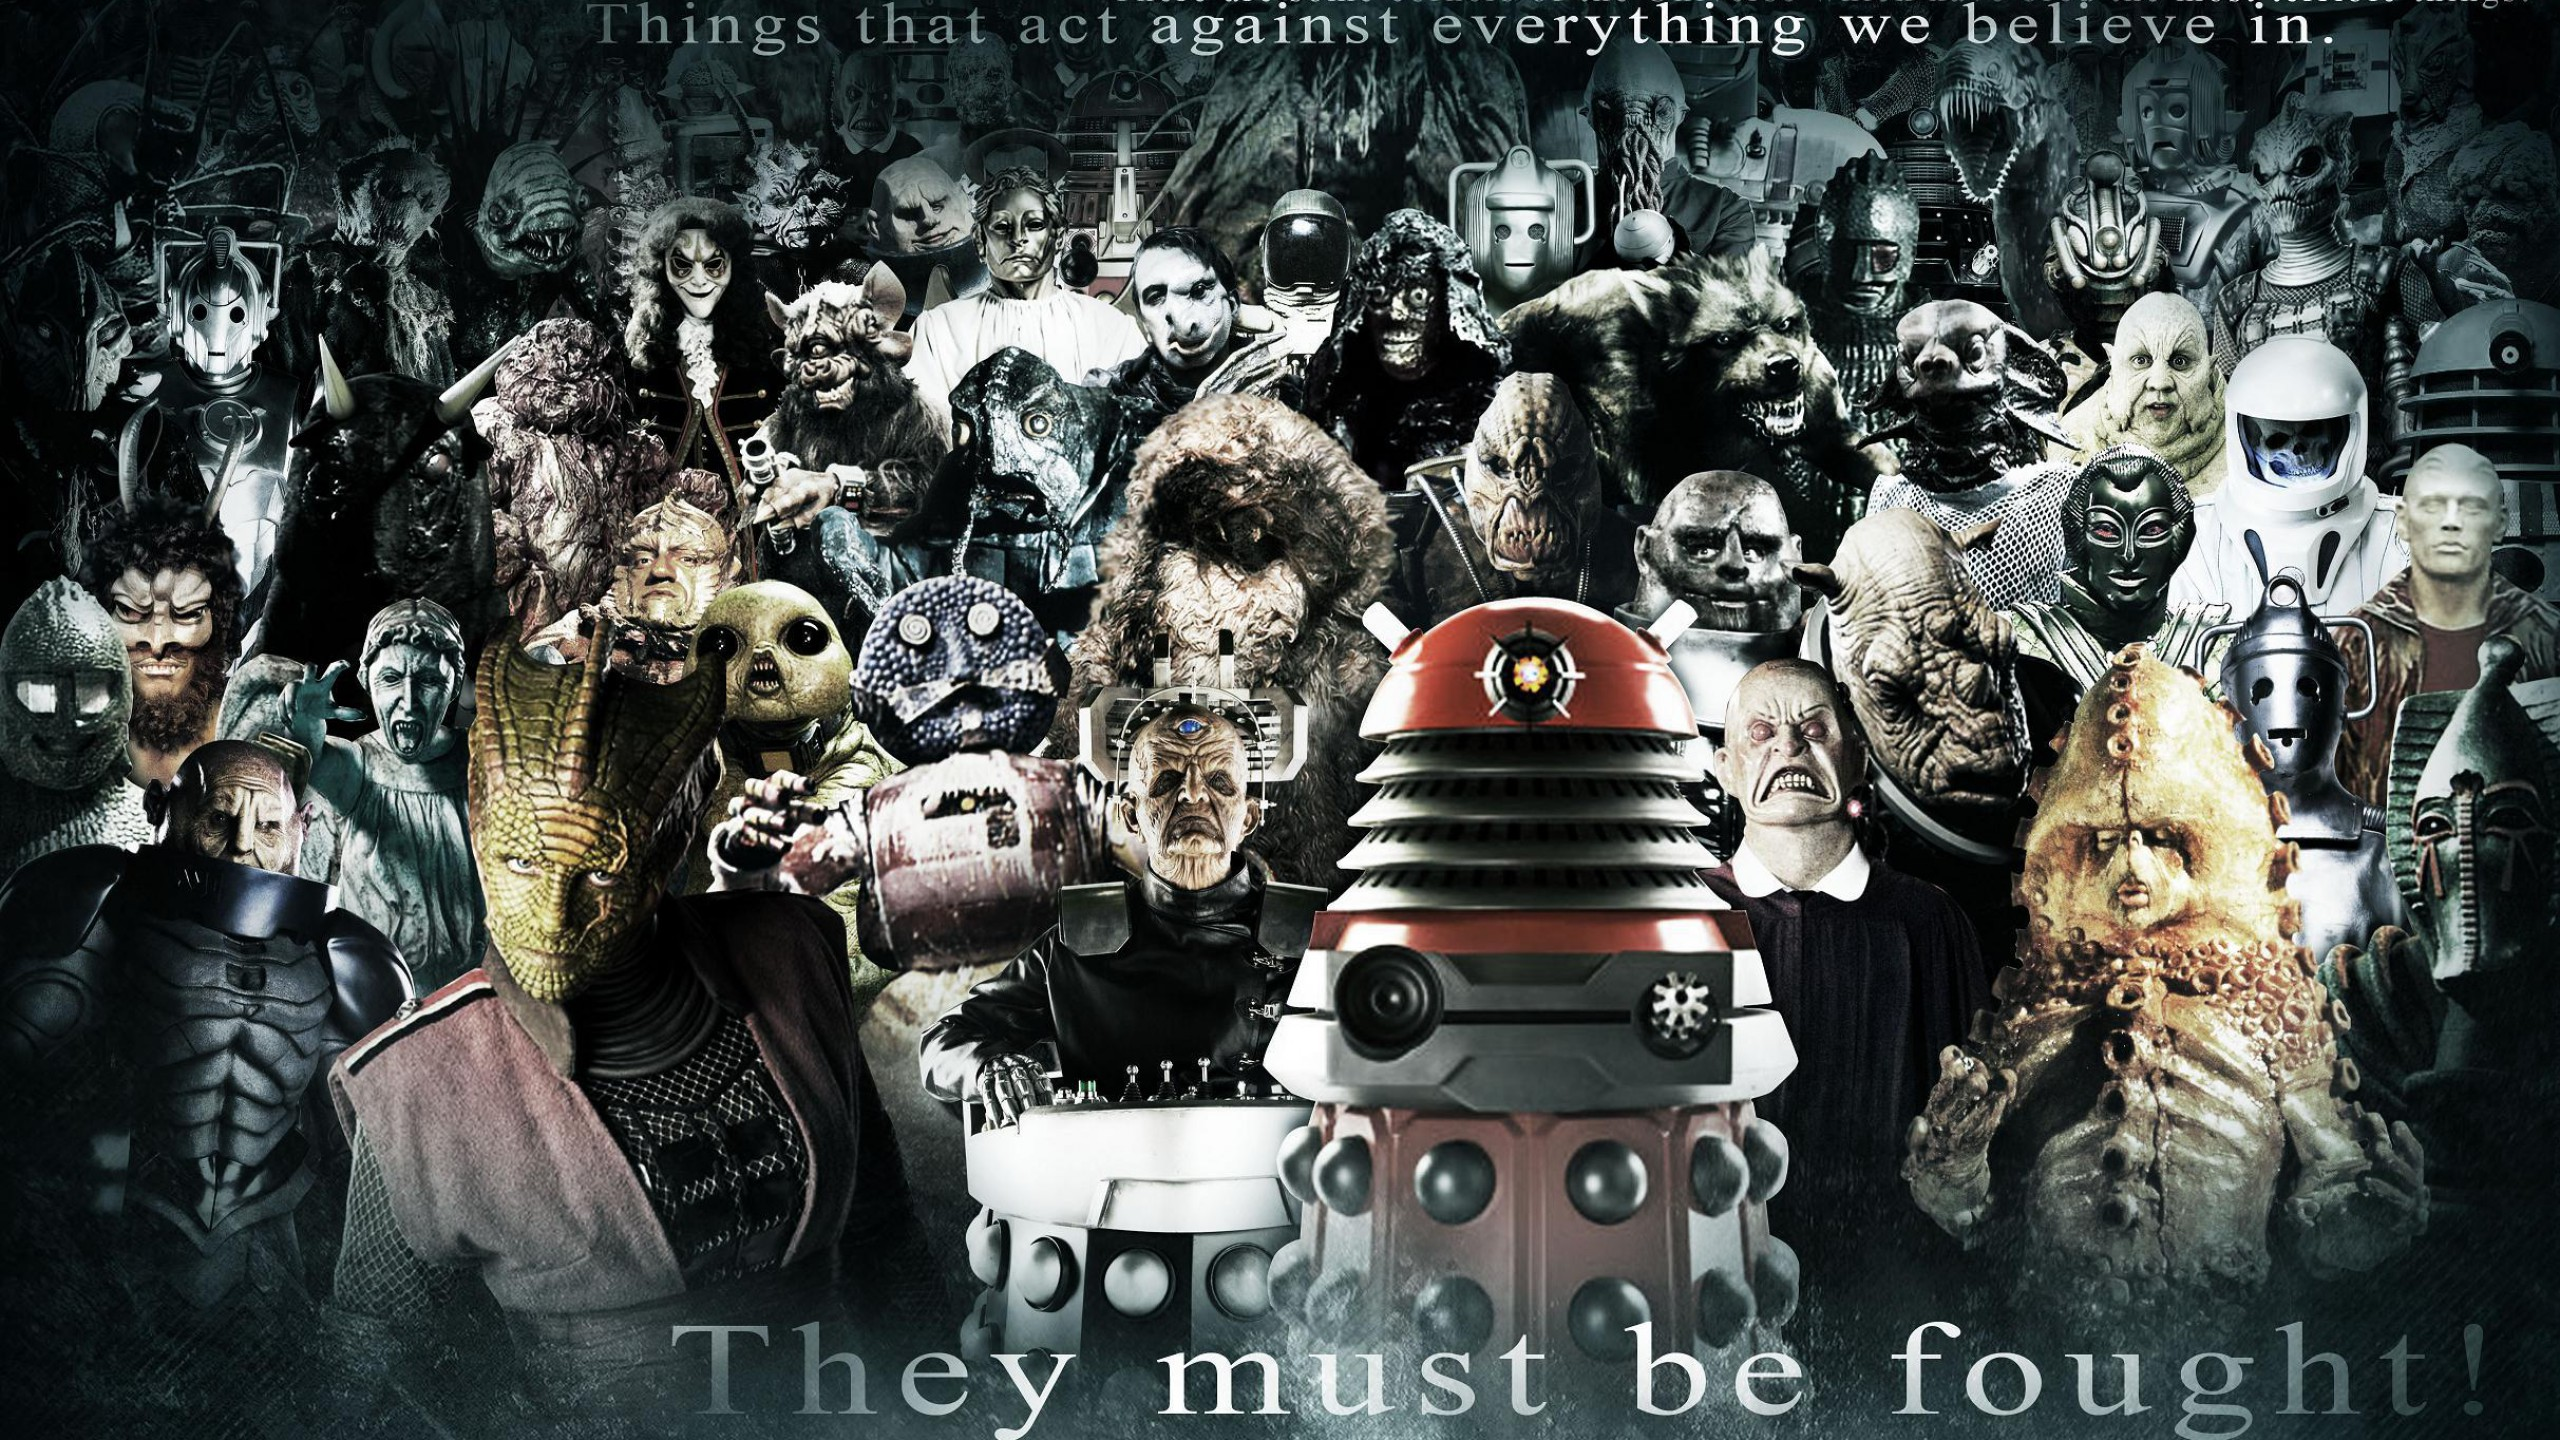 Doctor Who wallpaper 13